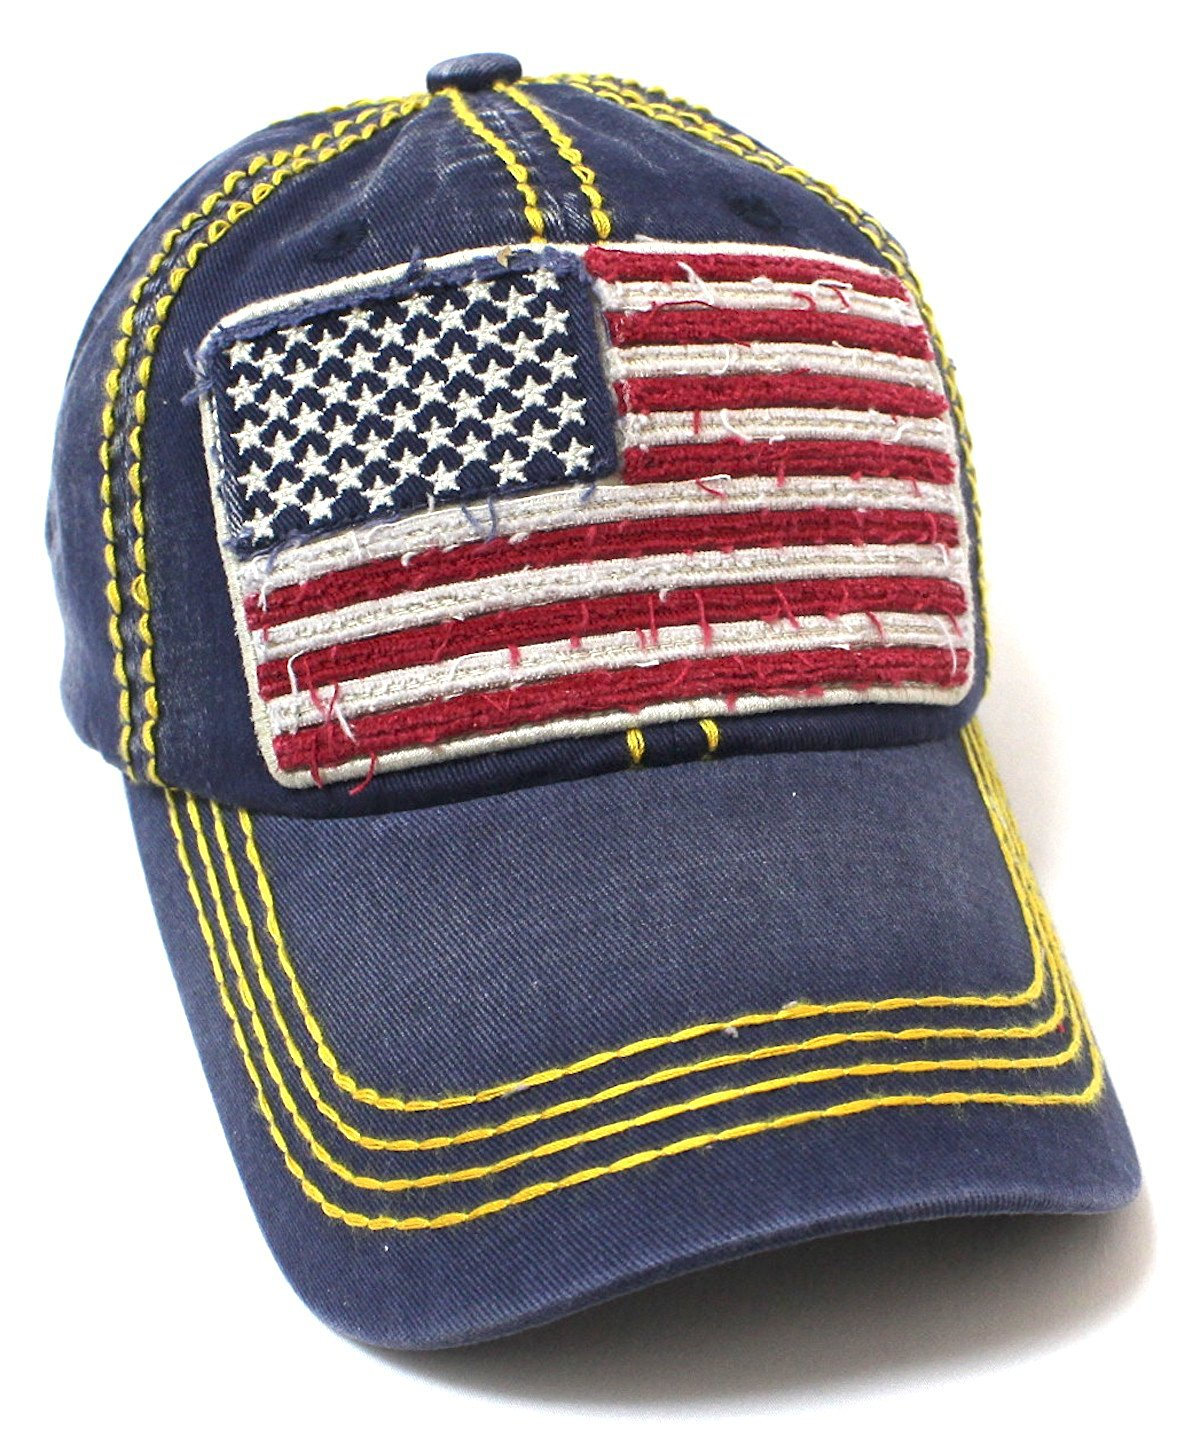 Navy Oversized USA Flag Patch Embroidery Ballcap - Caps 'N Vintage